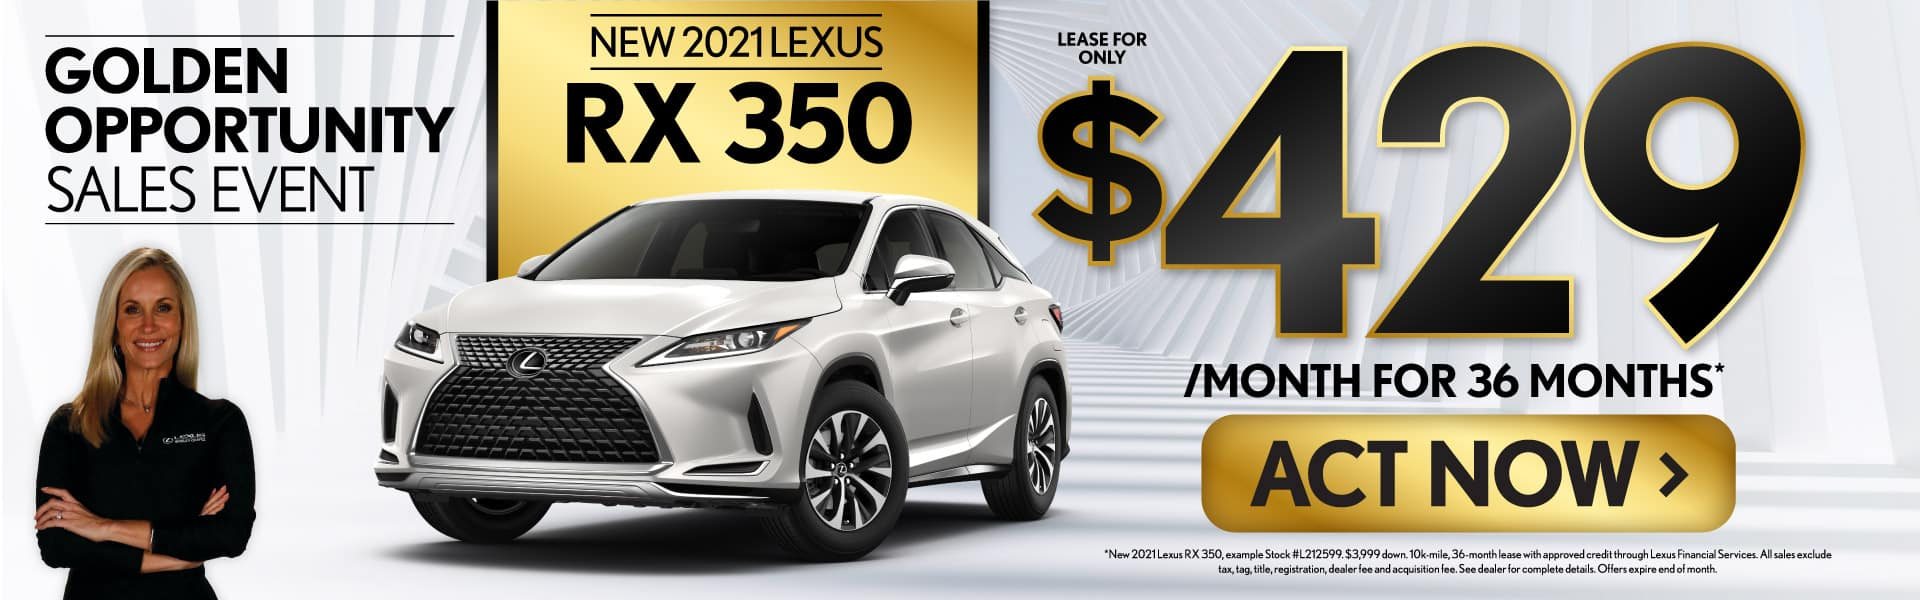 New 2021 Lexus RX 350 only $429/mo - ACT NOW